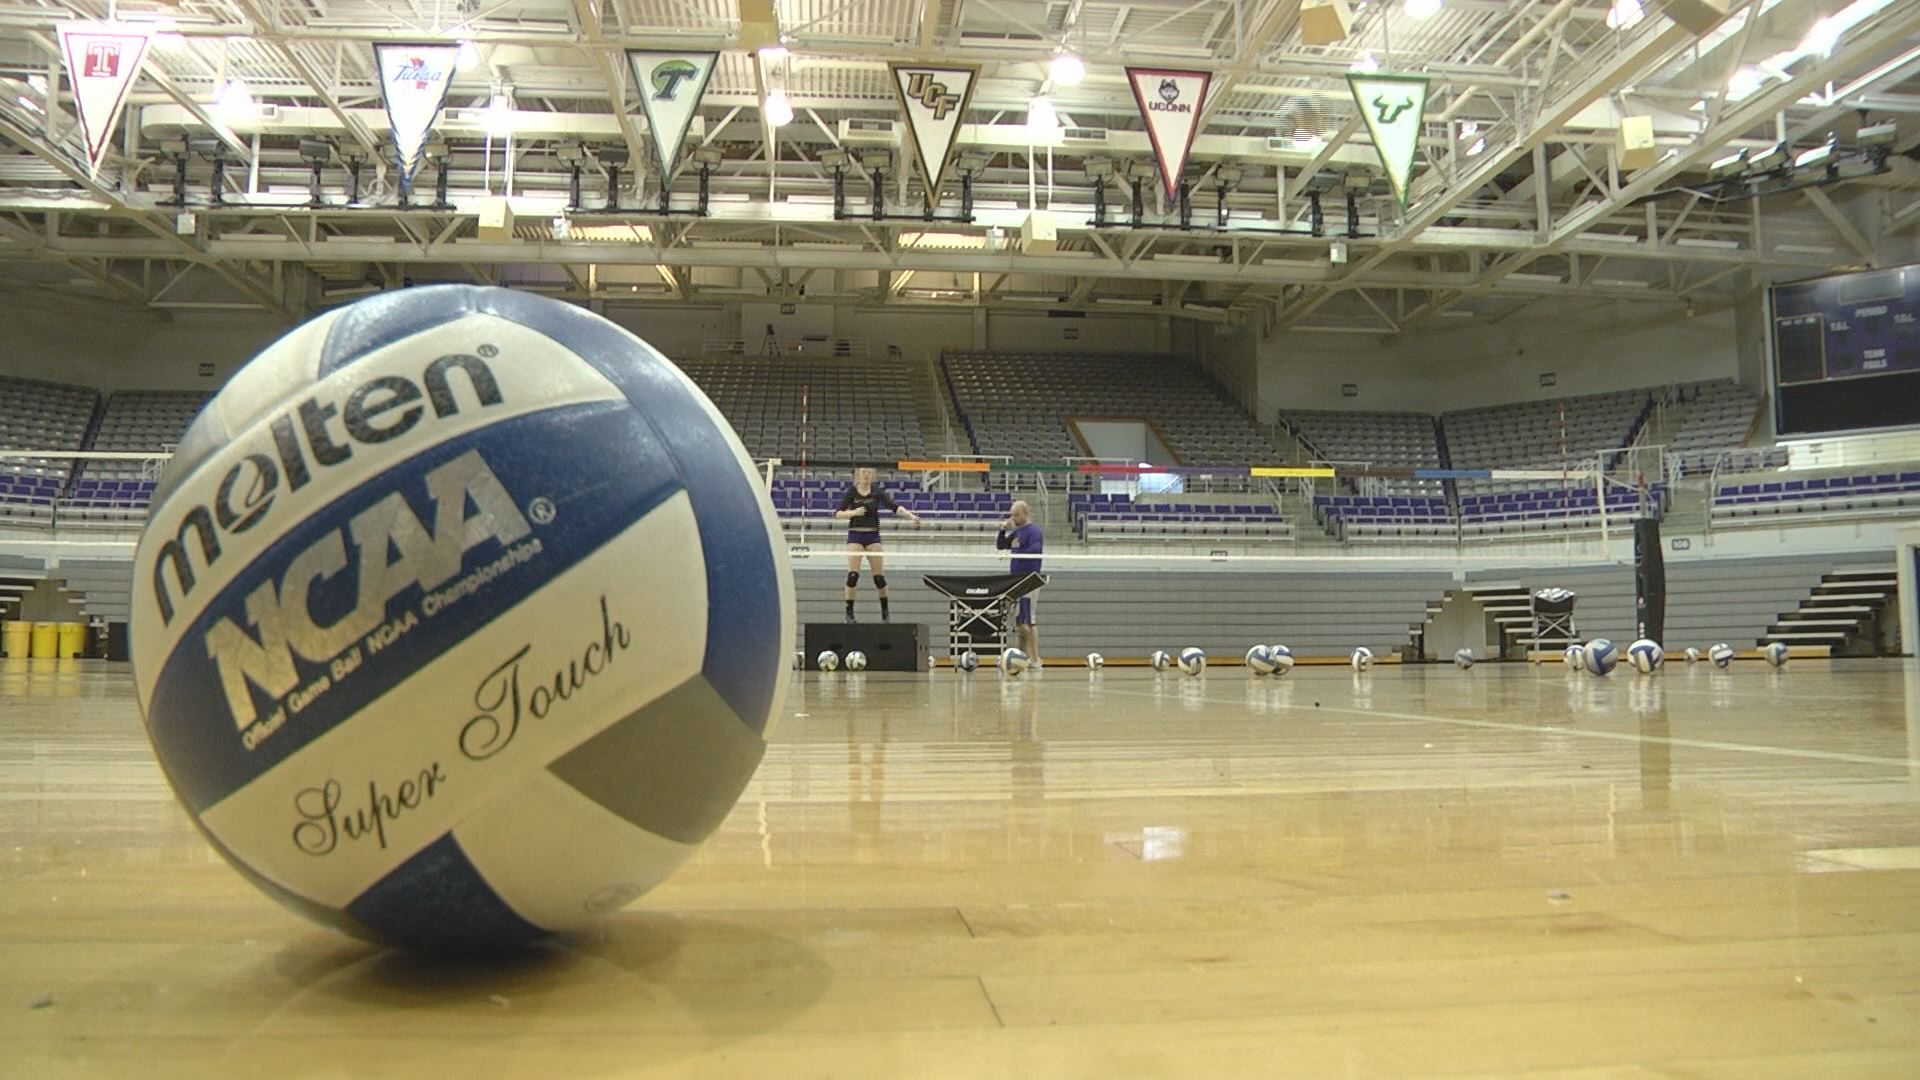 ecu-volleyball_271770